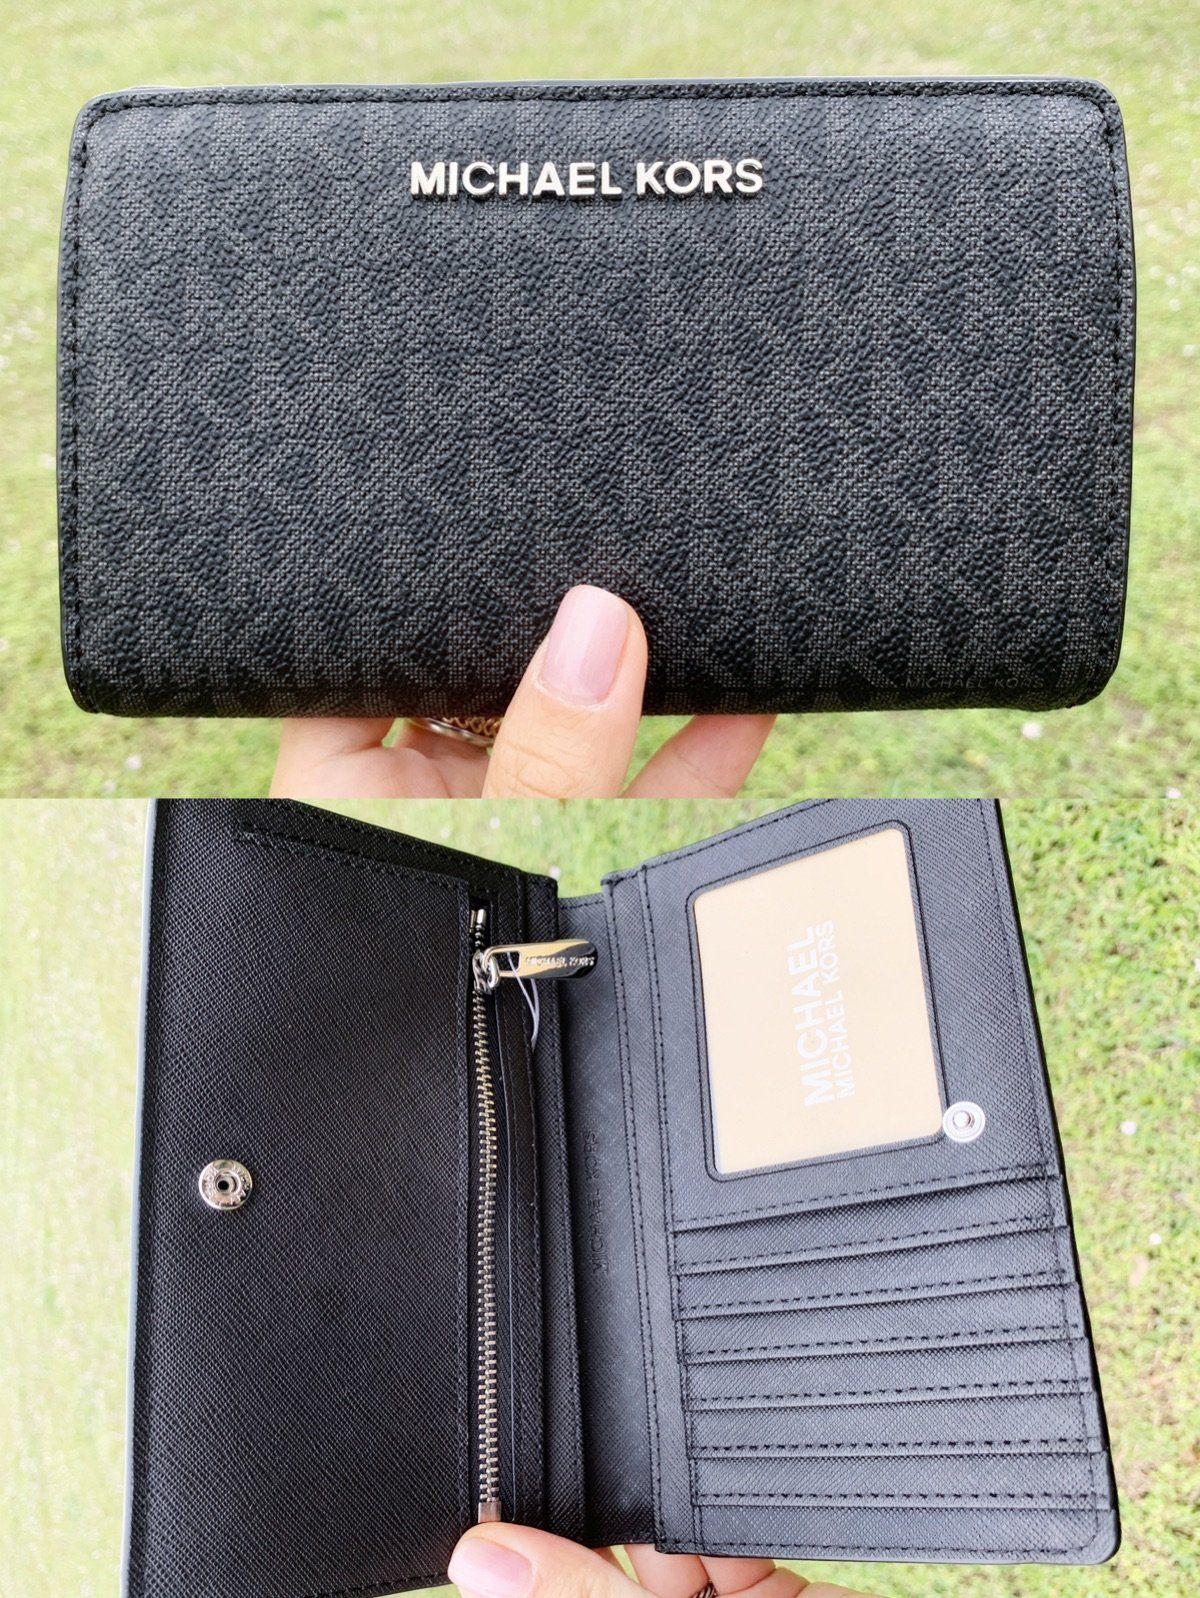 88d05eddab0e Michael Kors Jet Set Travel PVC Slim Bifold Wallet Black MK  ebaystore   poshboss  top  amazondeals  poshfashion  ebayseller  amazon  Poshmark   Handbags   ...